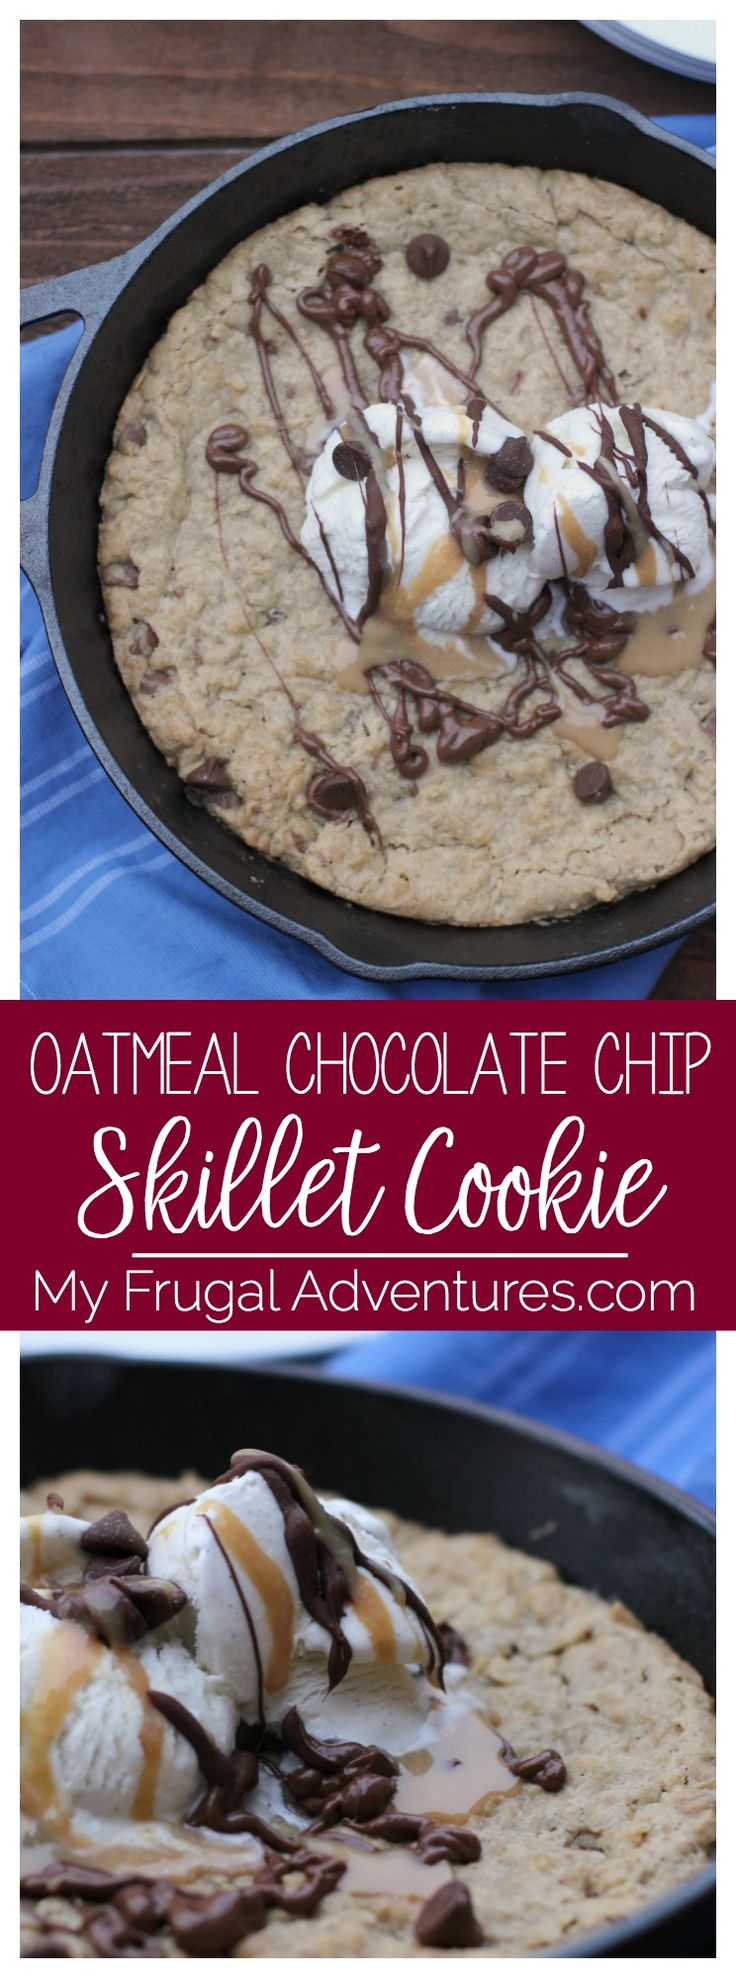 Oatmeal Chocolate Chip Skillet Cookie- this is soft, chewy and delicious!  Homemade version of the famous pizookie that comes together in just minutes.